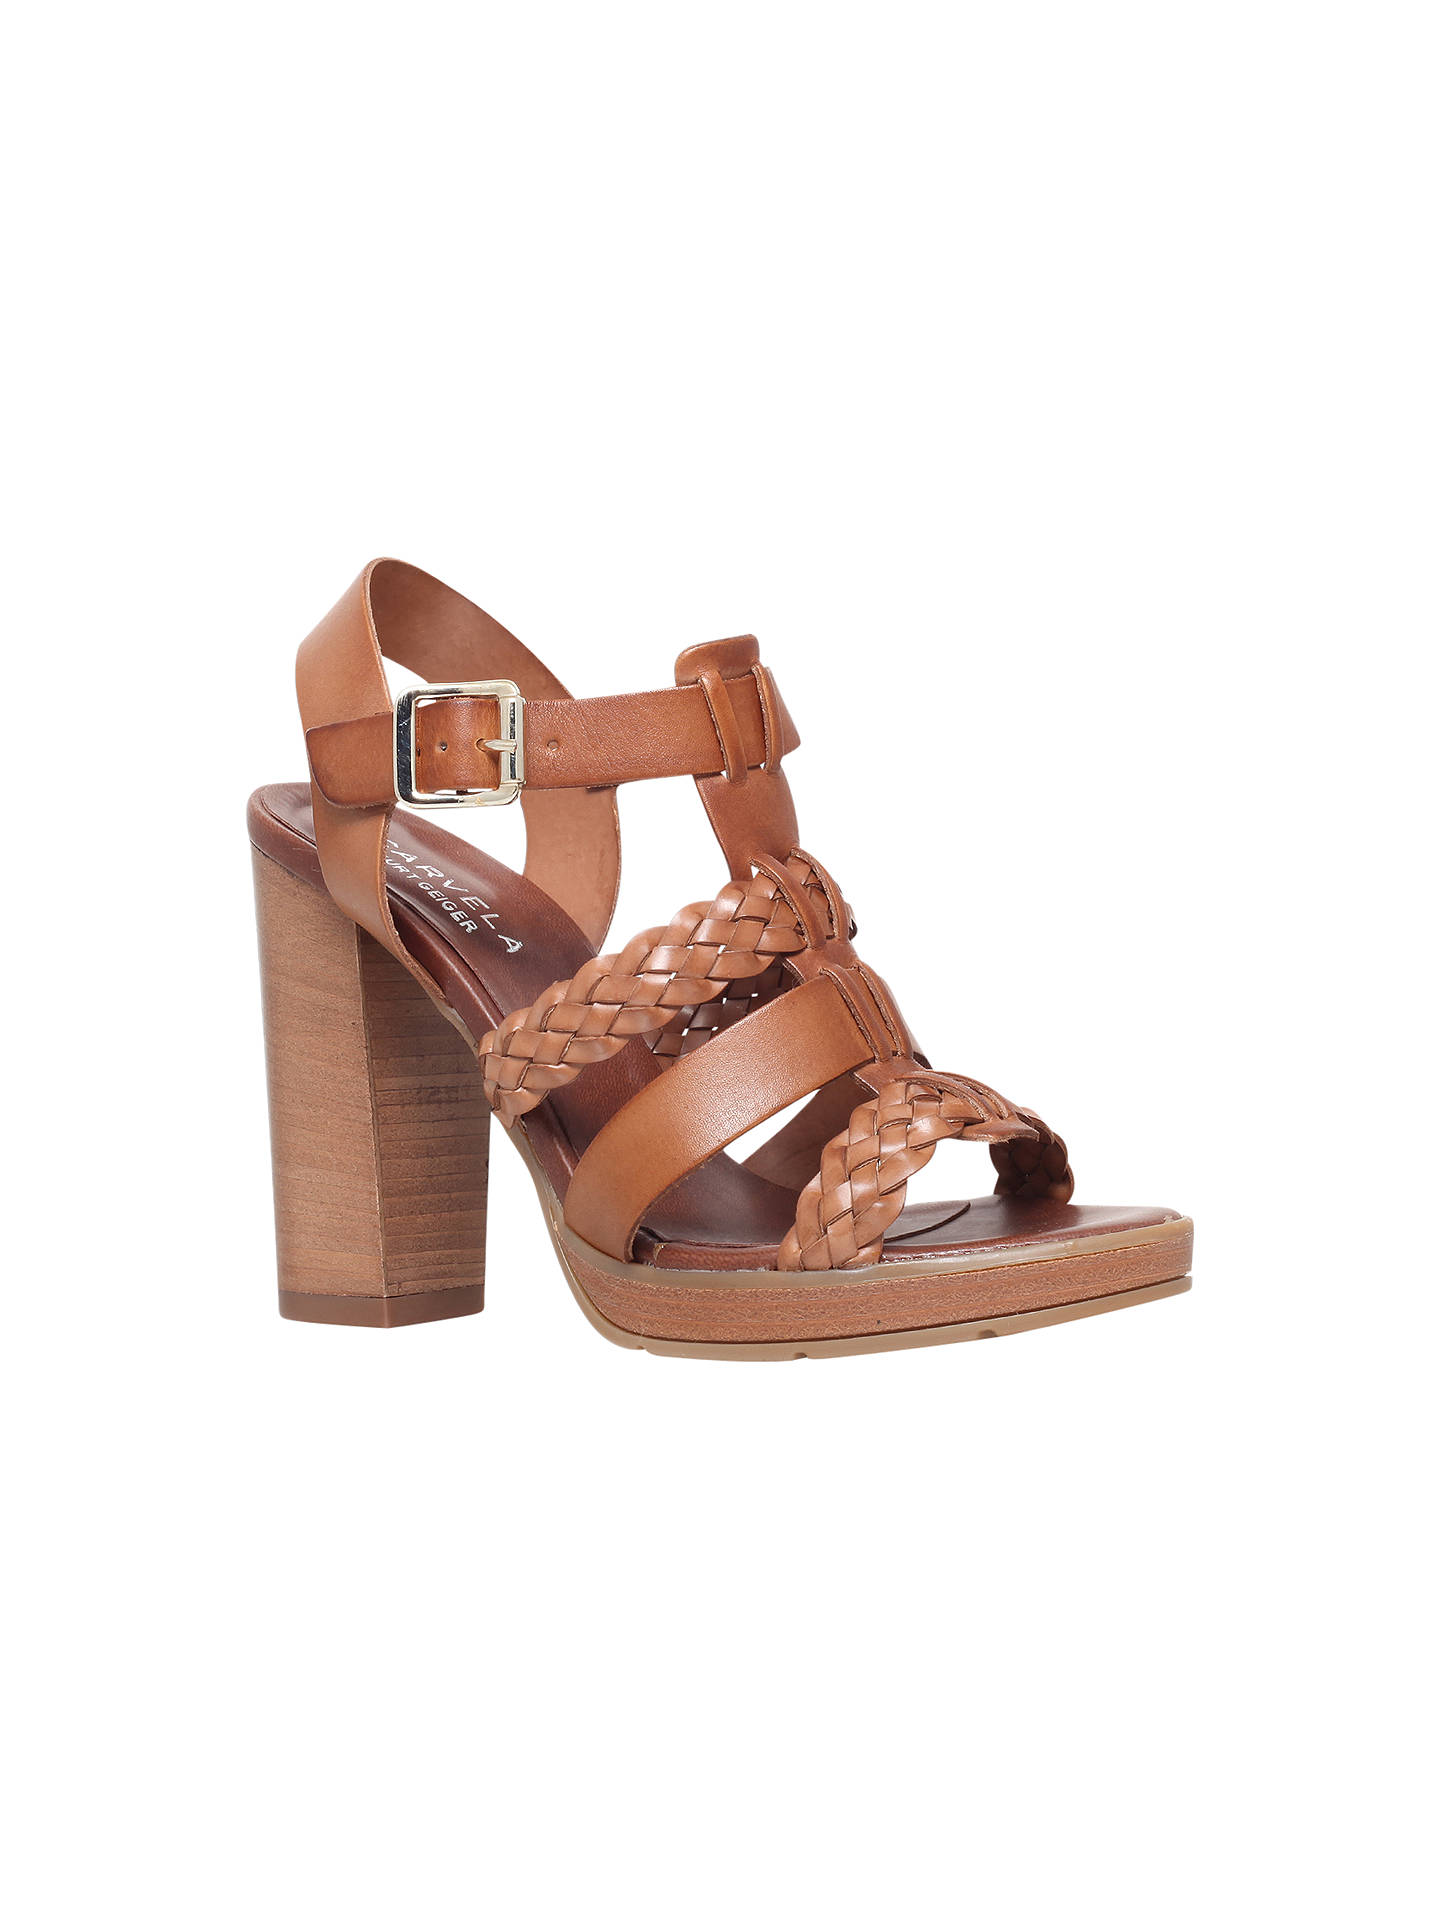 832ab029952 Carvela Krill Block Heel Sandals at John Lewis   Partners